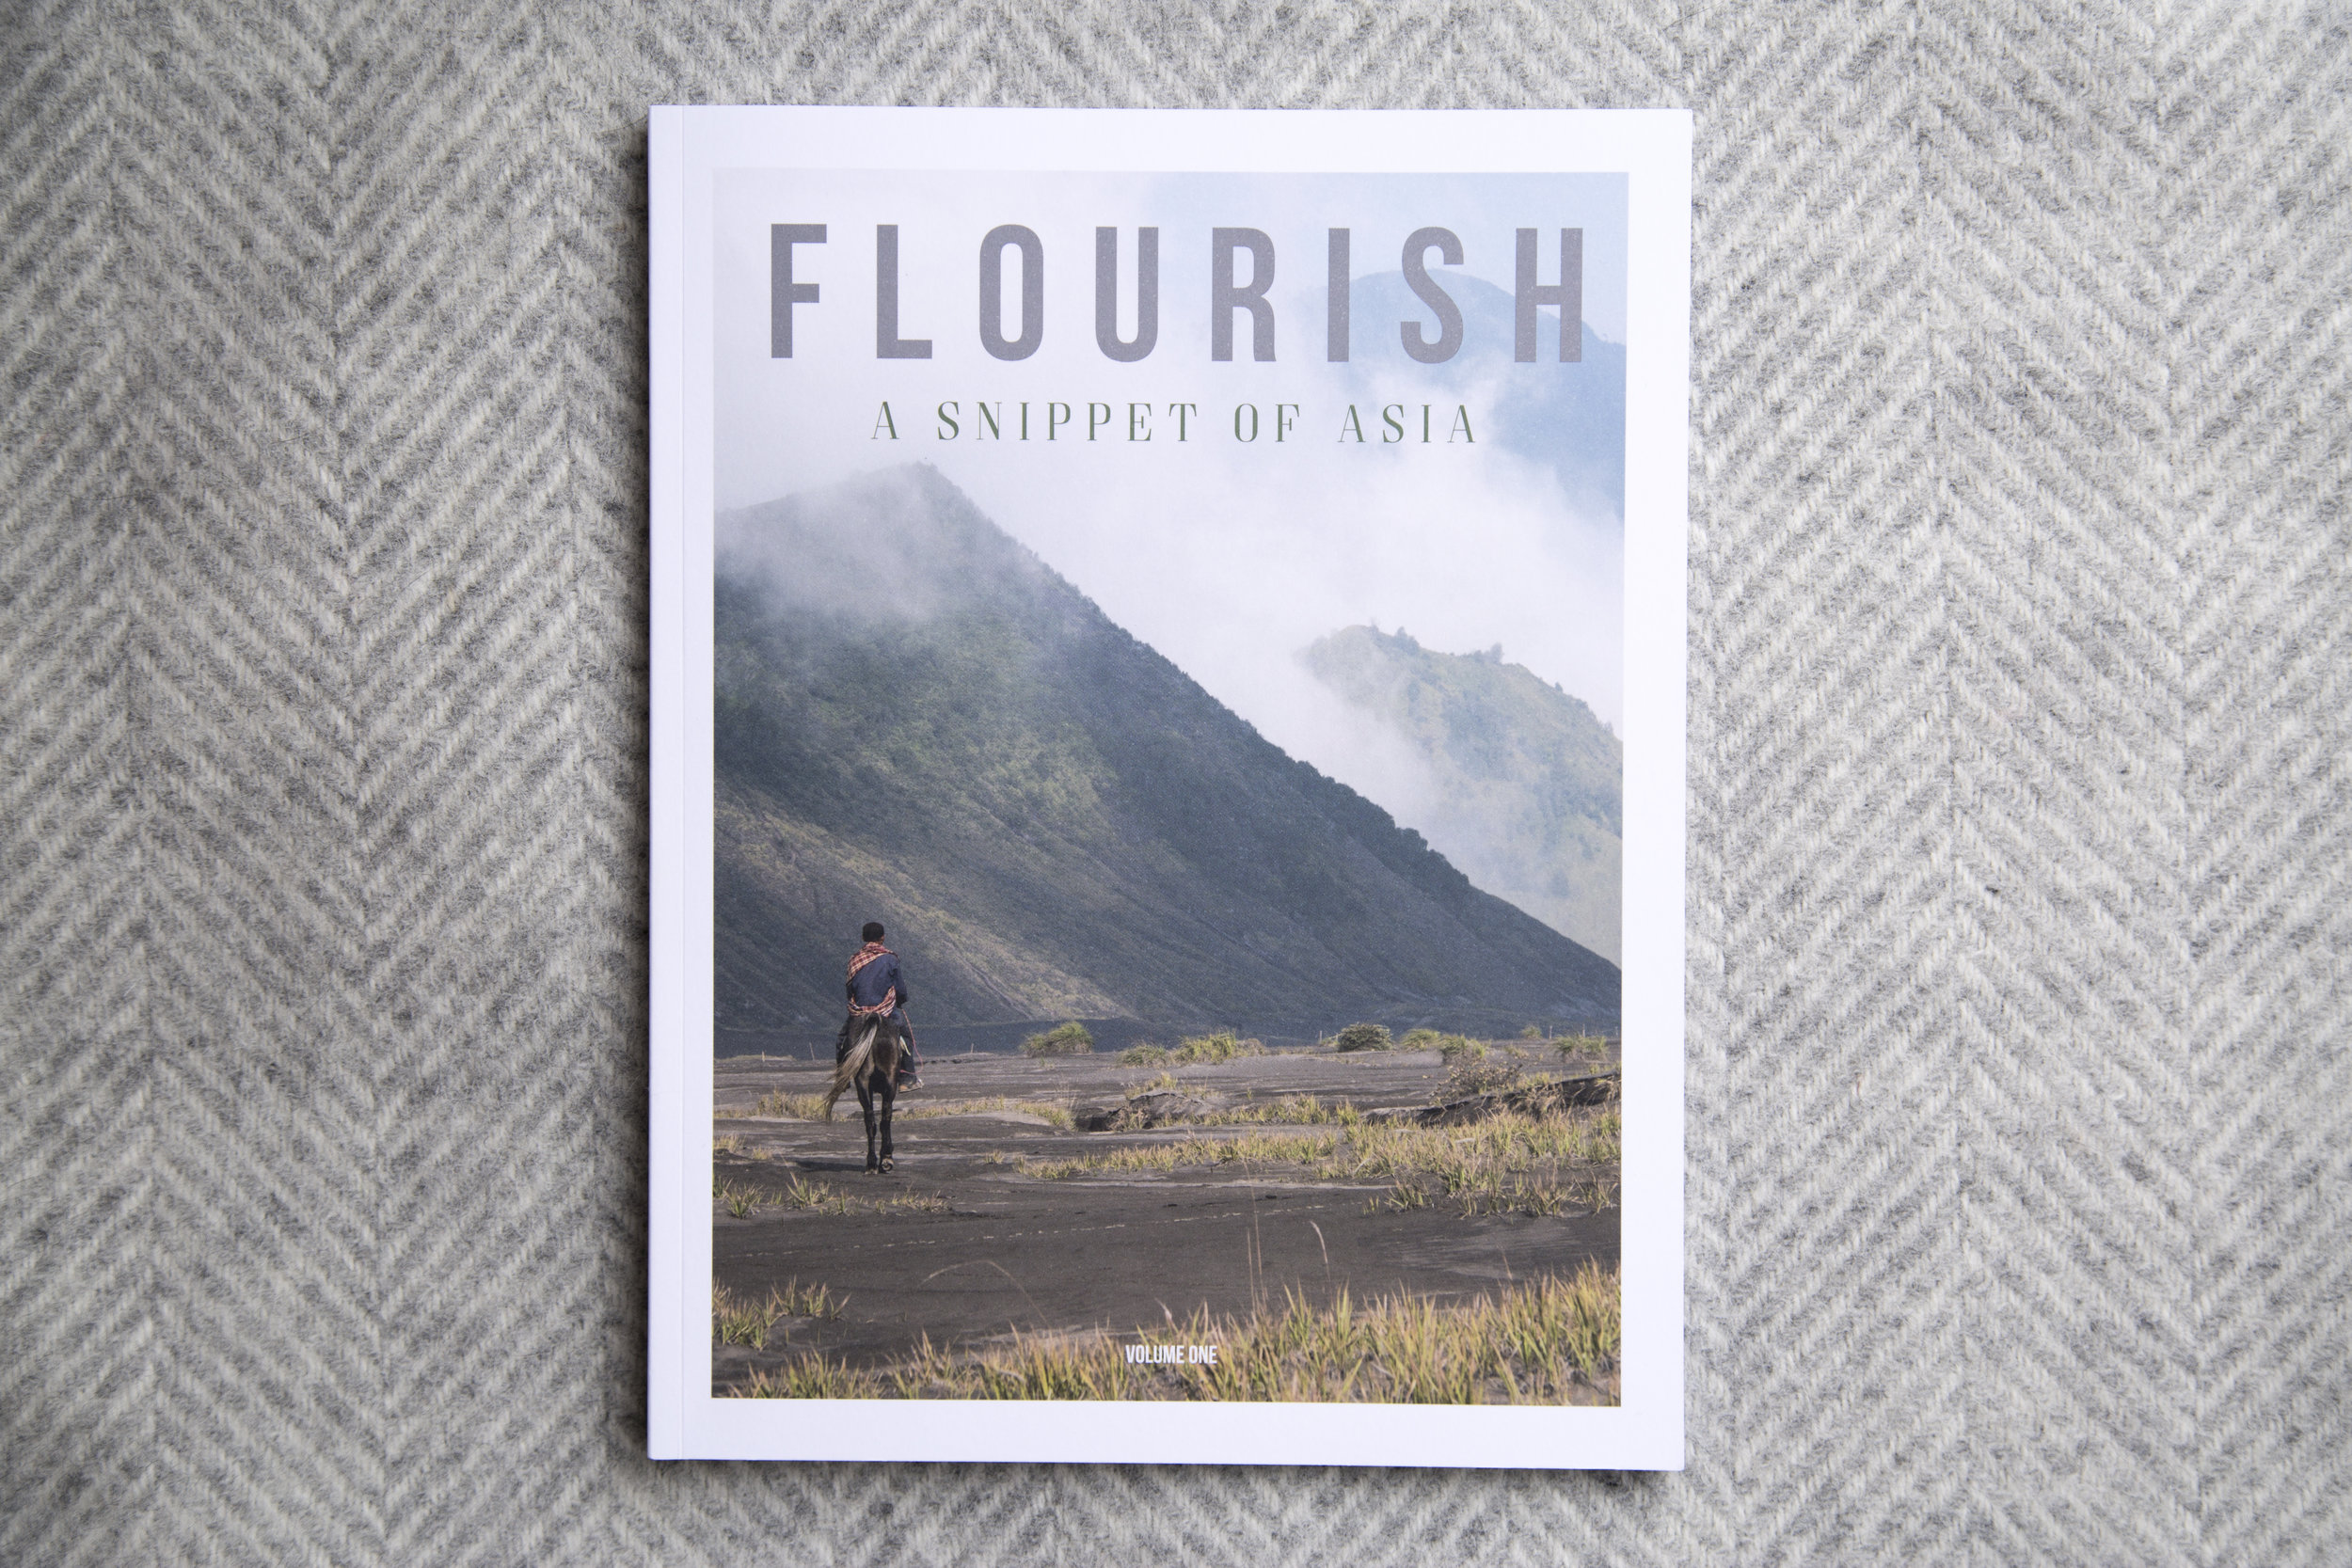 Volume 1 of Flourish